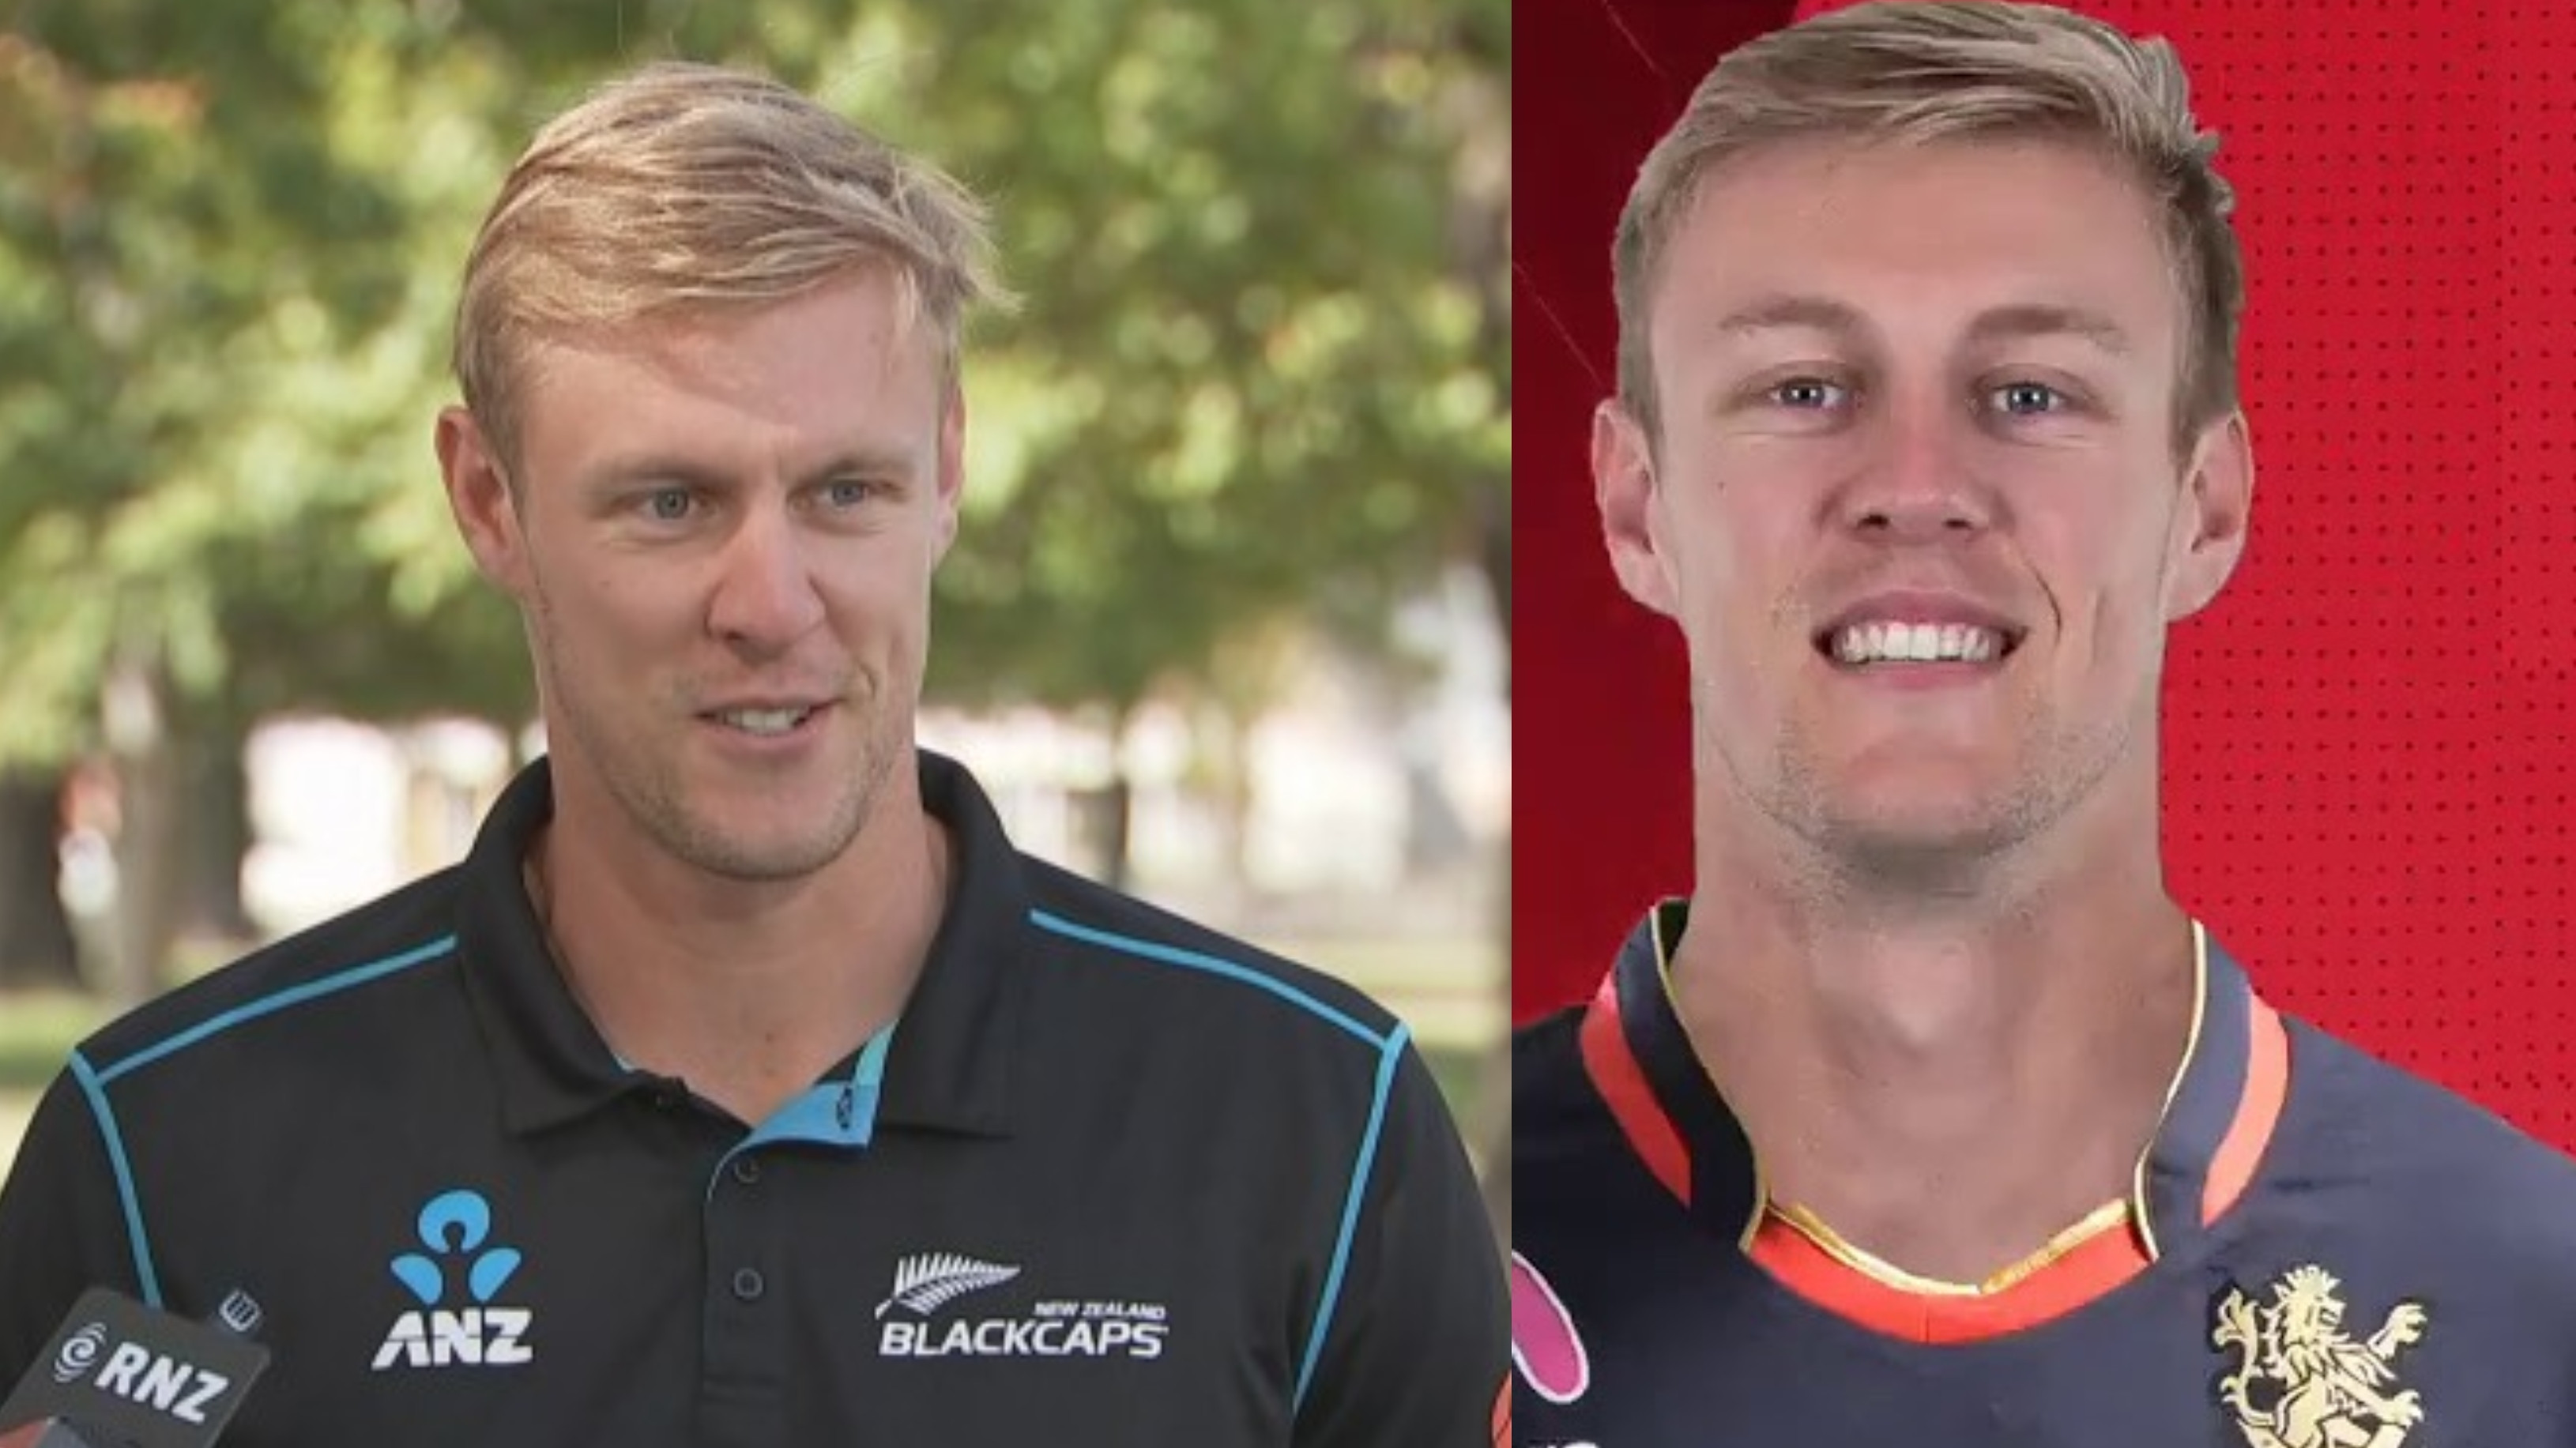 IPL 2021: Kyle Jamieson shares his surreal experience of securing a jaw-dropping deal with RCB